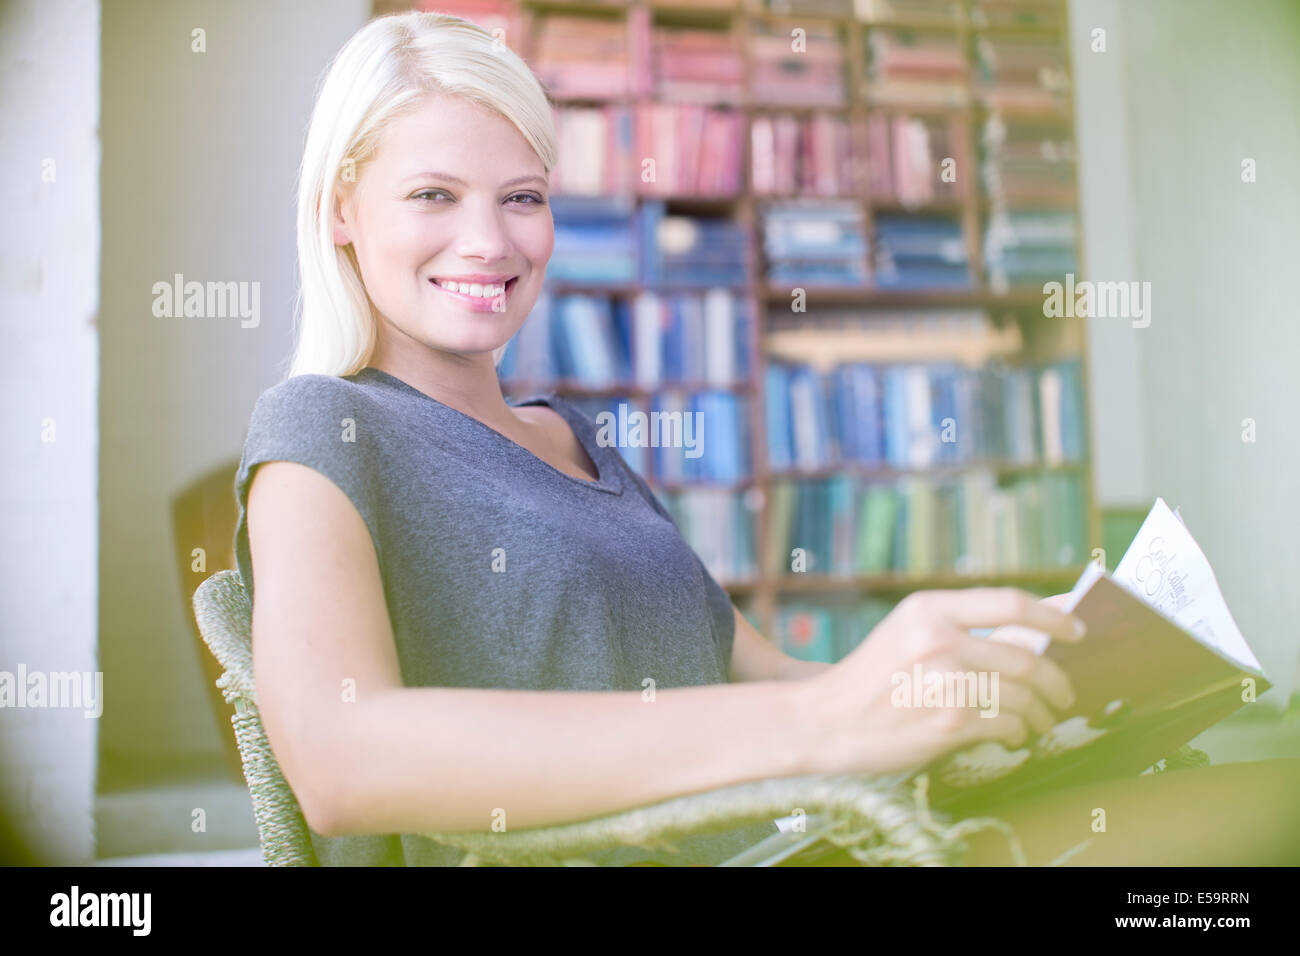 Woman Reading in armchair Photo Stock